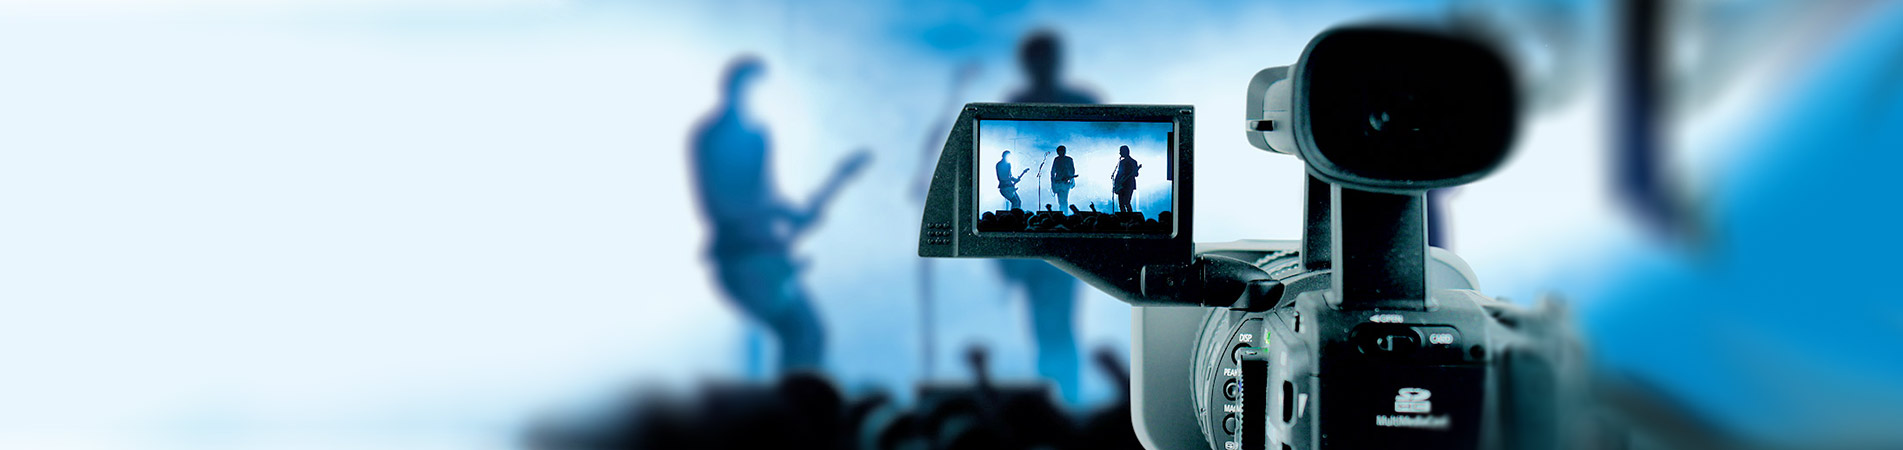 Corporate Video Production in Bangalore